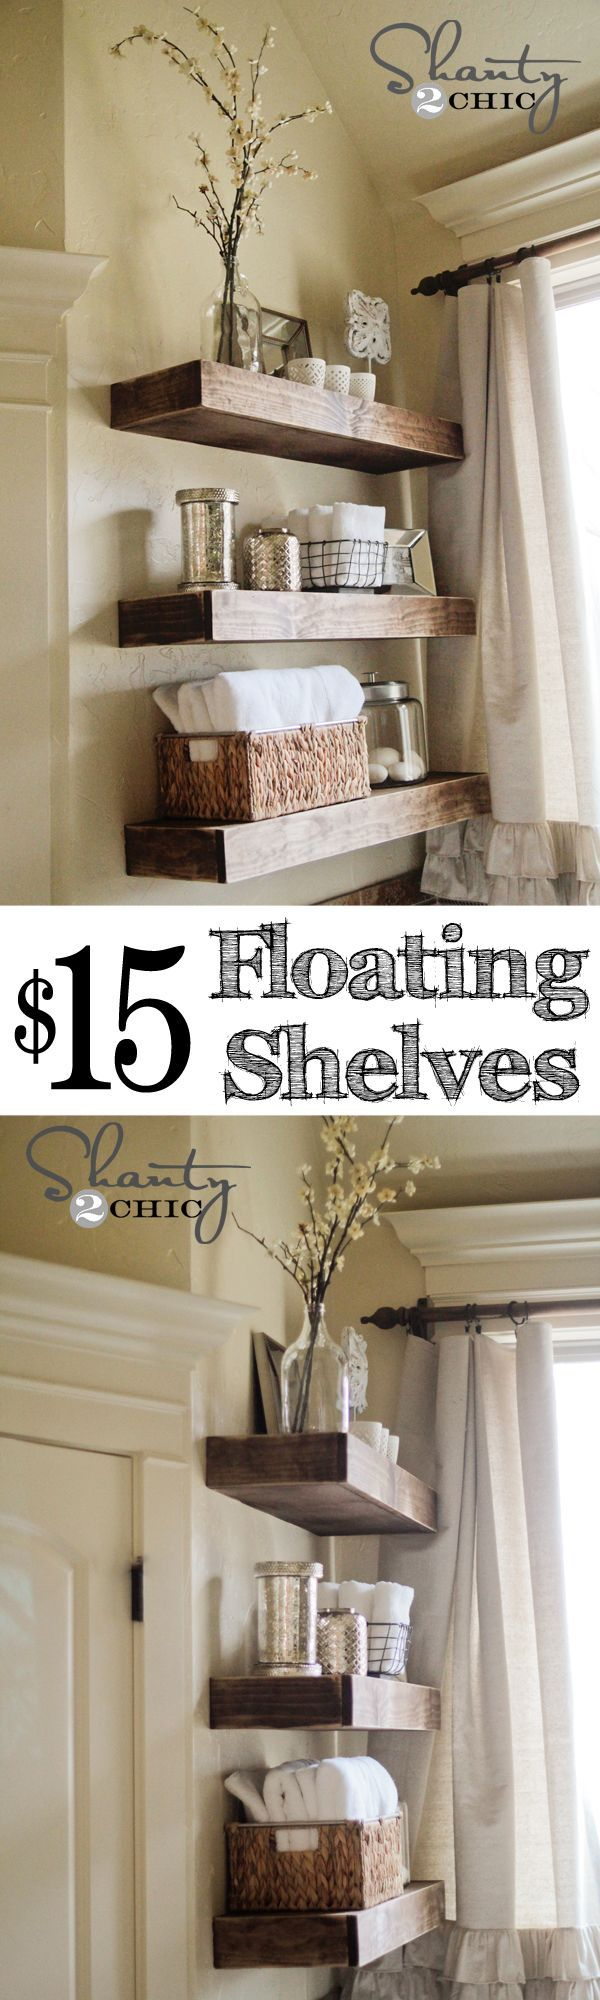 Photo of 12 Budget Friendly DIY Remodeling Projects For Your Bathroom